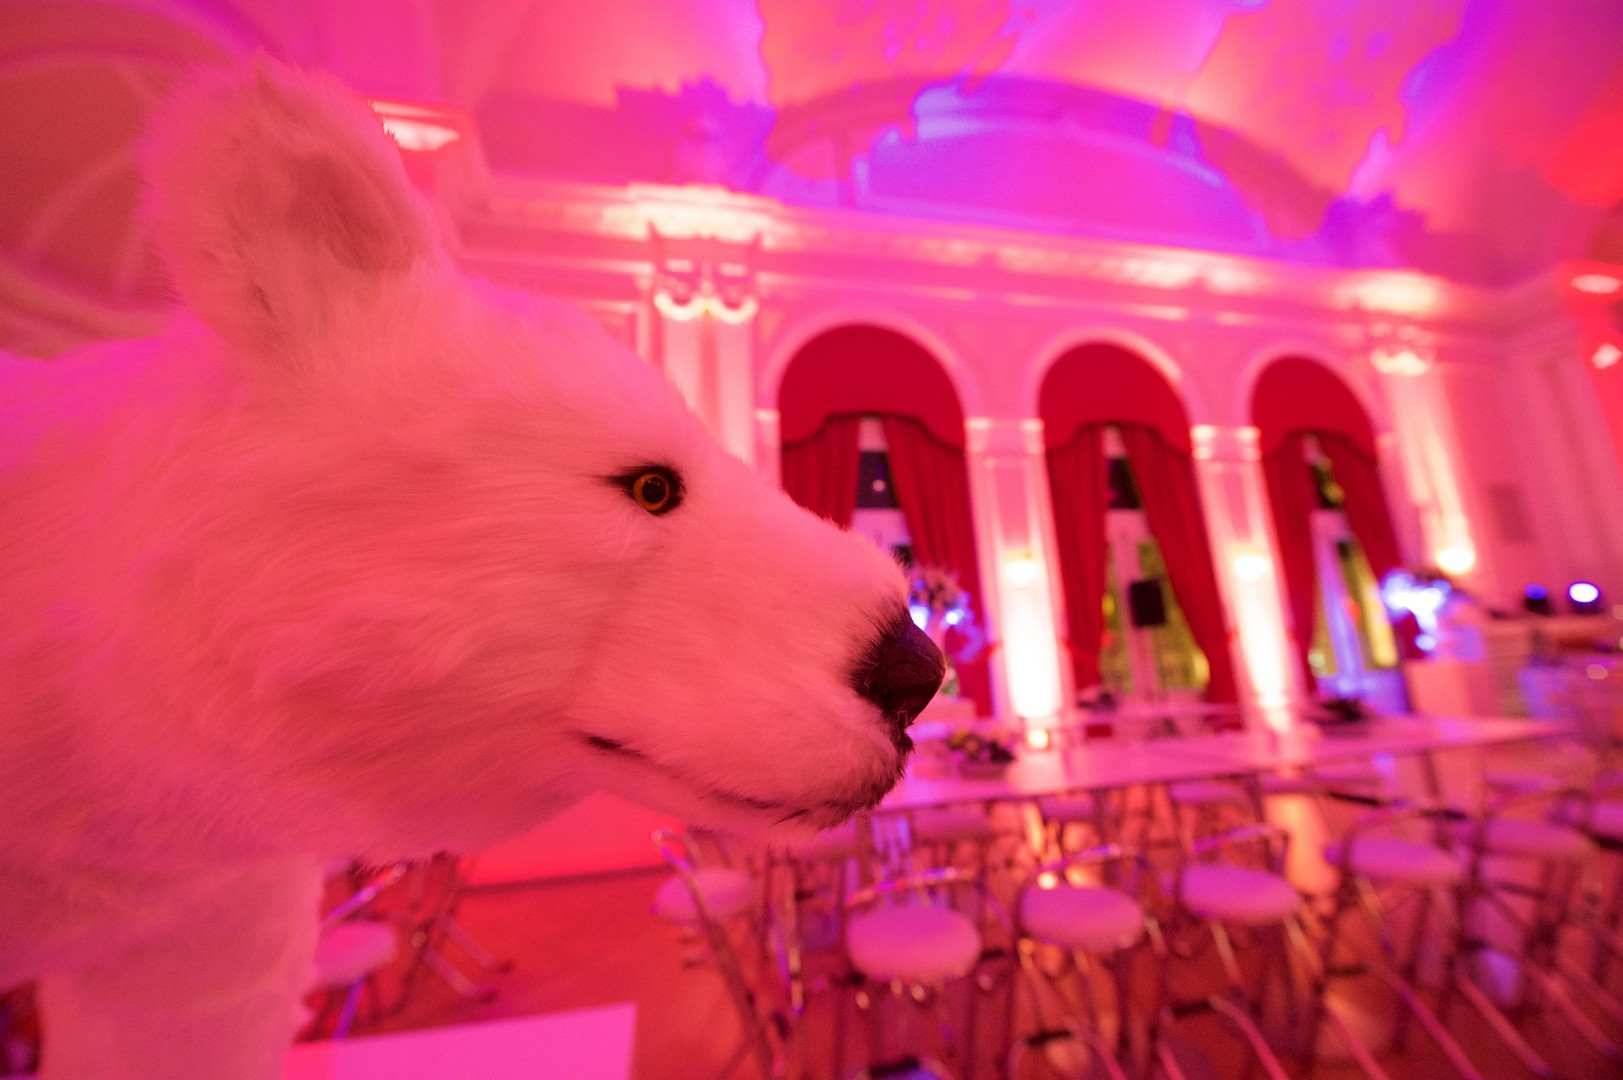 xmas-party-loyens-loeff-2014-group-project-christmas-lux